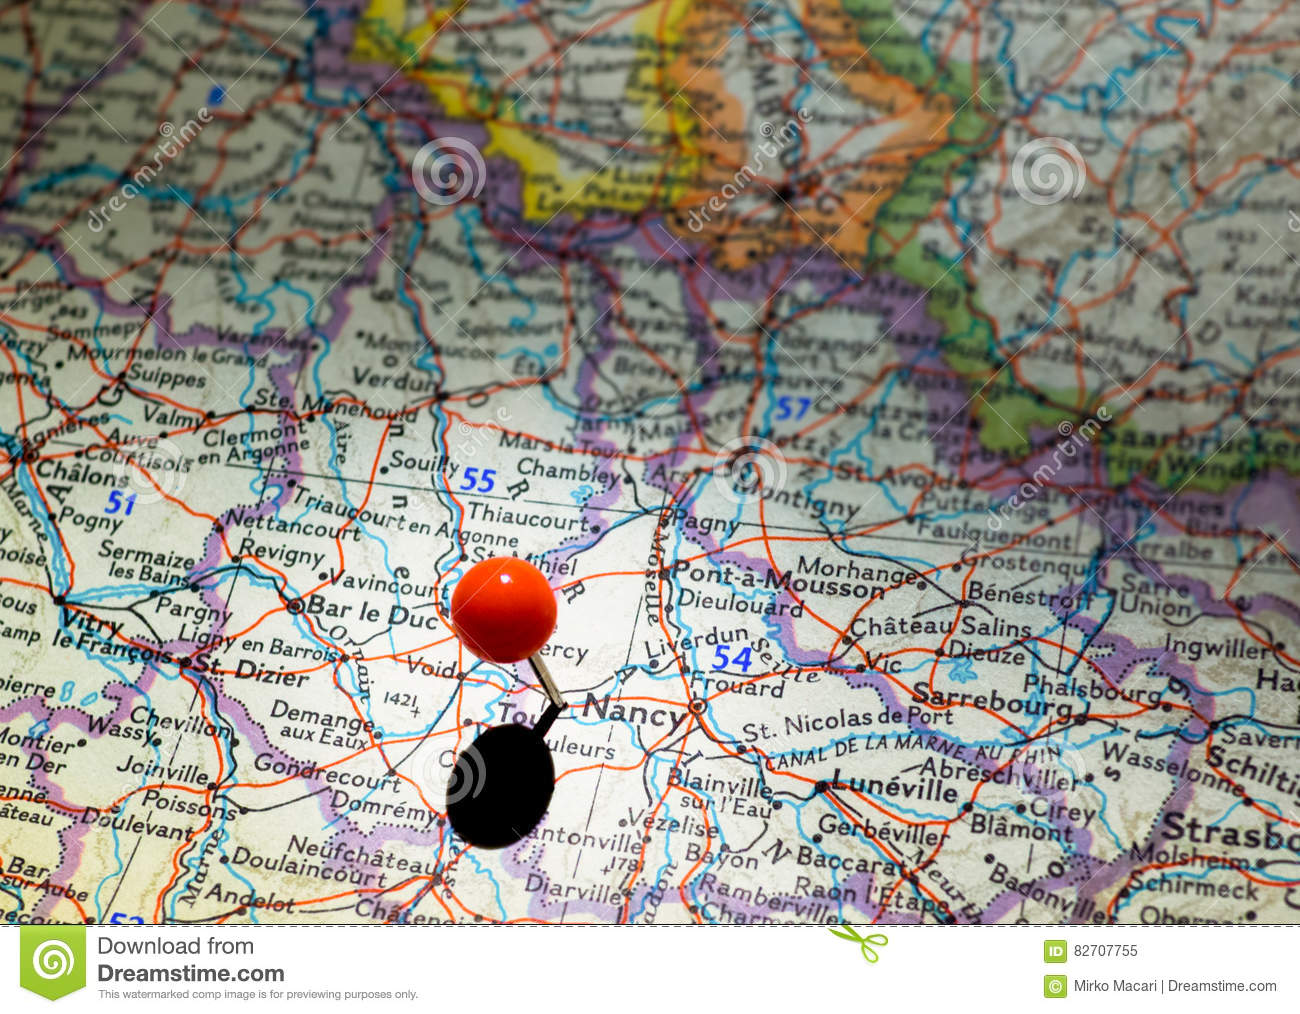 Map Of France Nancy.Nancy Location Pinned On The Route Map Stock Image Image Of